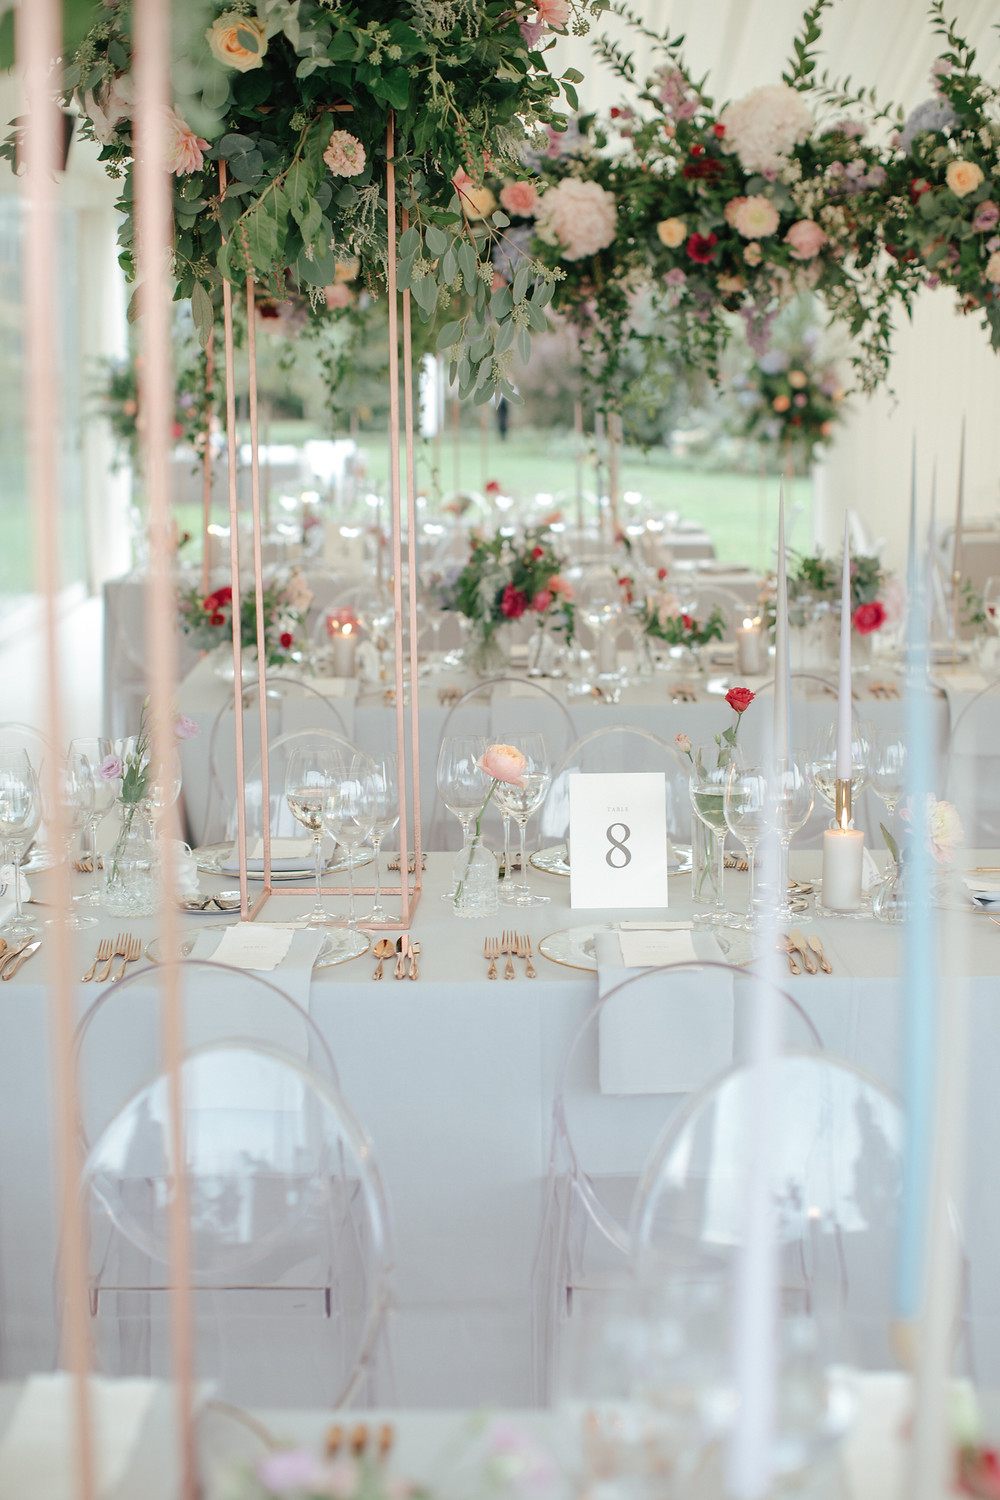 Marquee wedding with Ghost Chairs